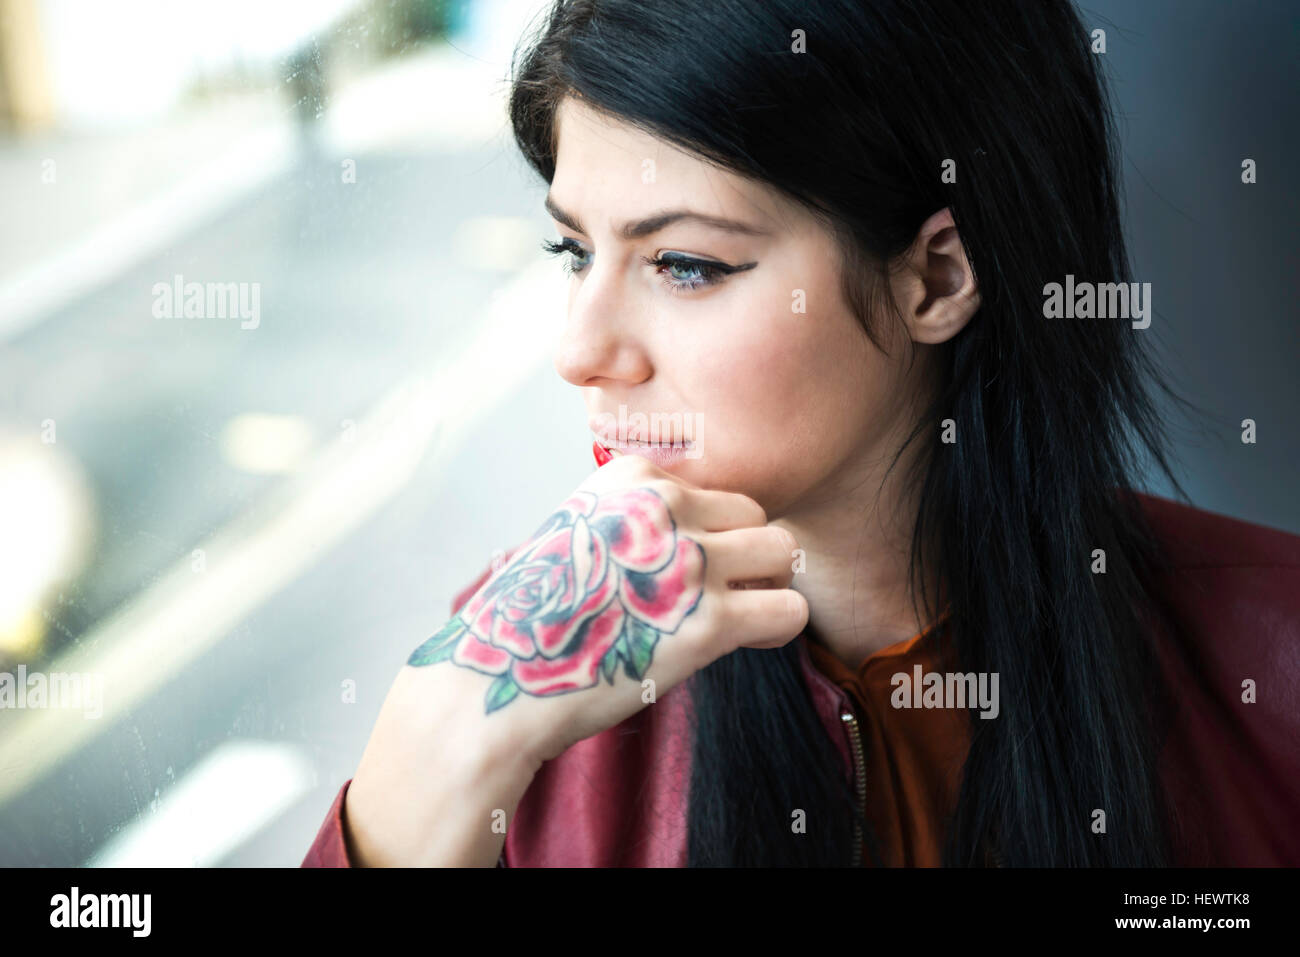 Young woman with tattoo on hand, looking through window - Stock Image